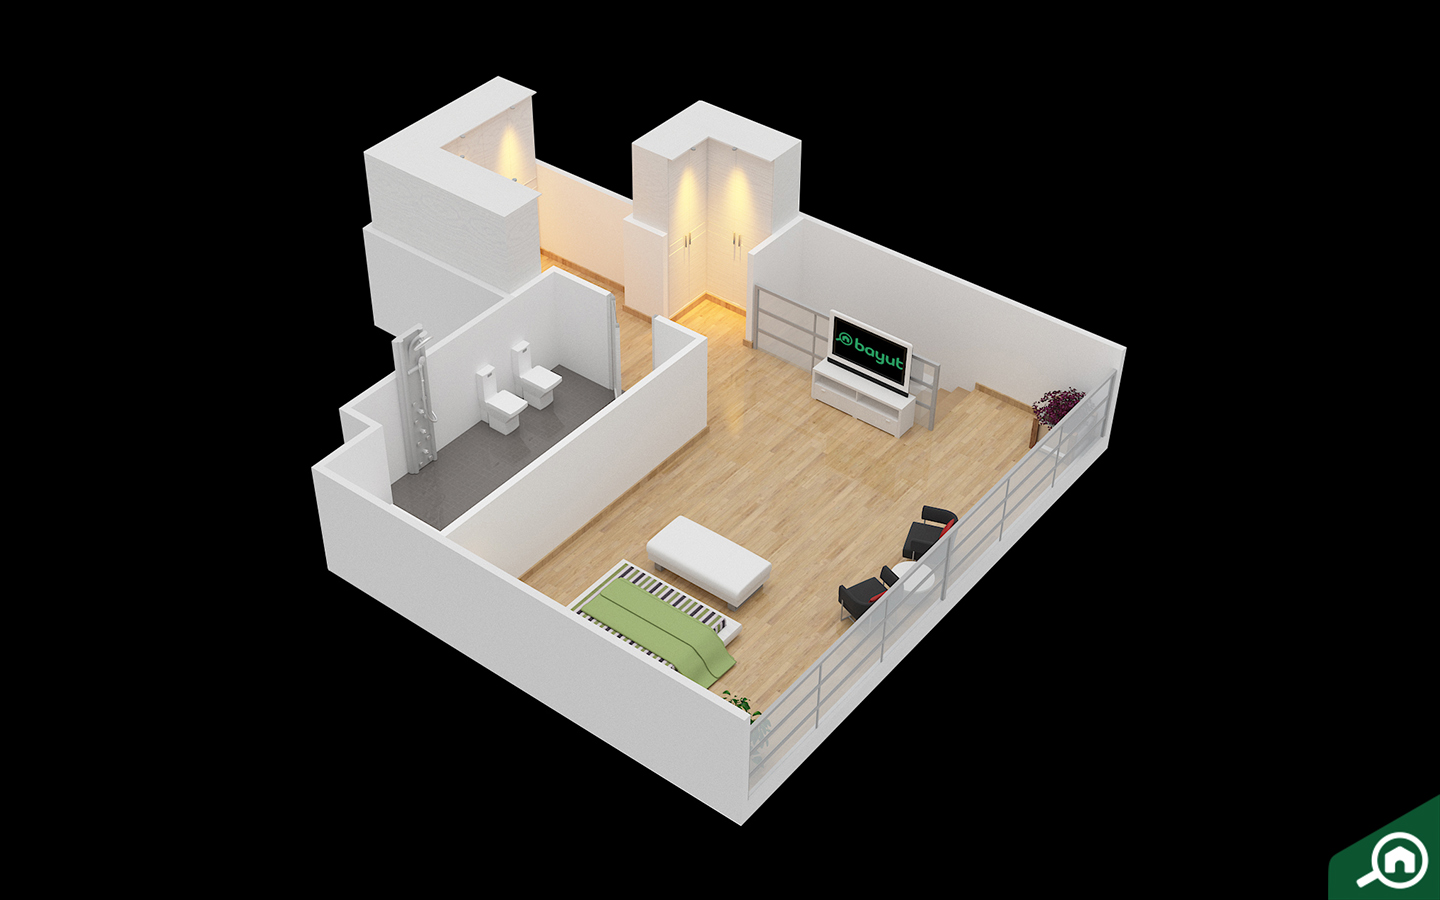 2D and 3D floor plans offered by Bayut